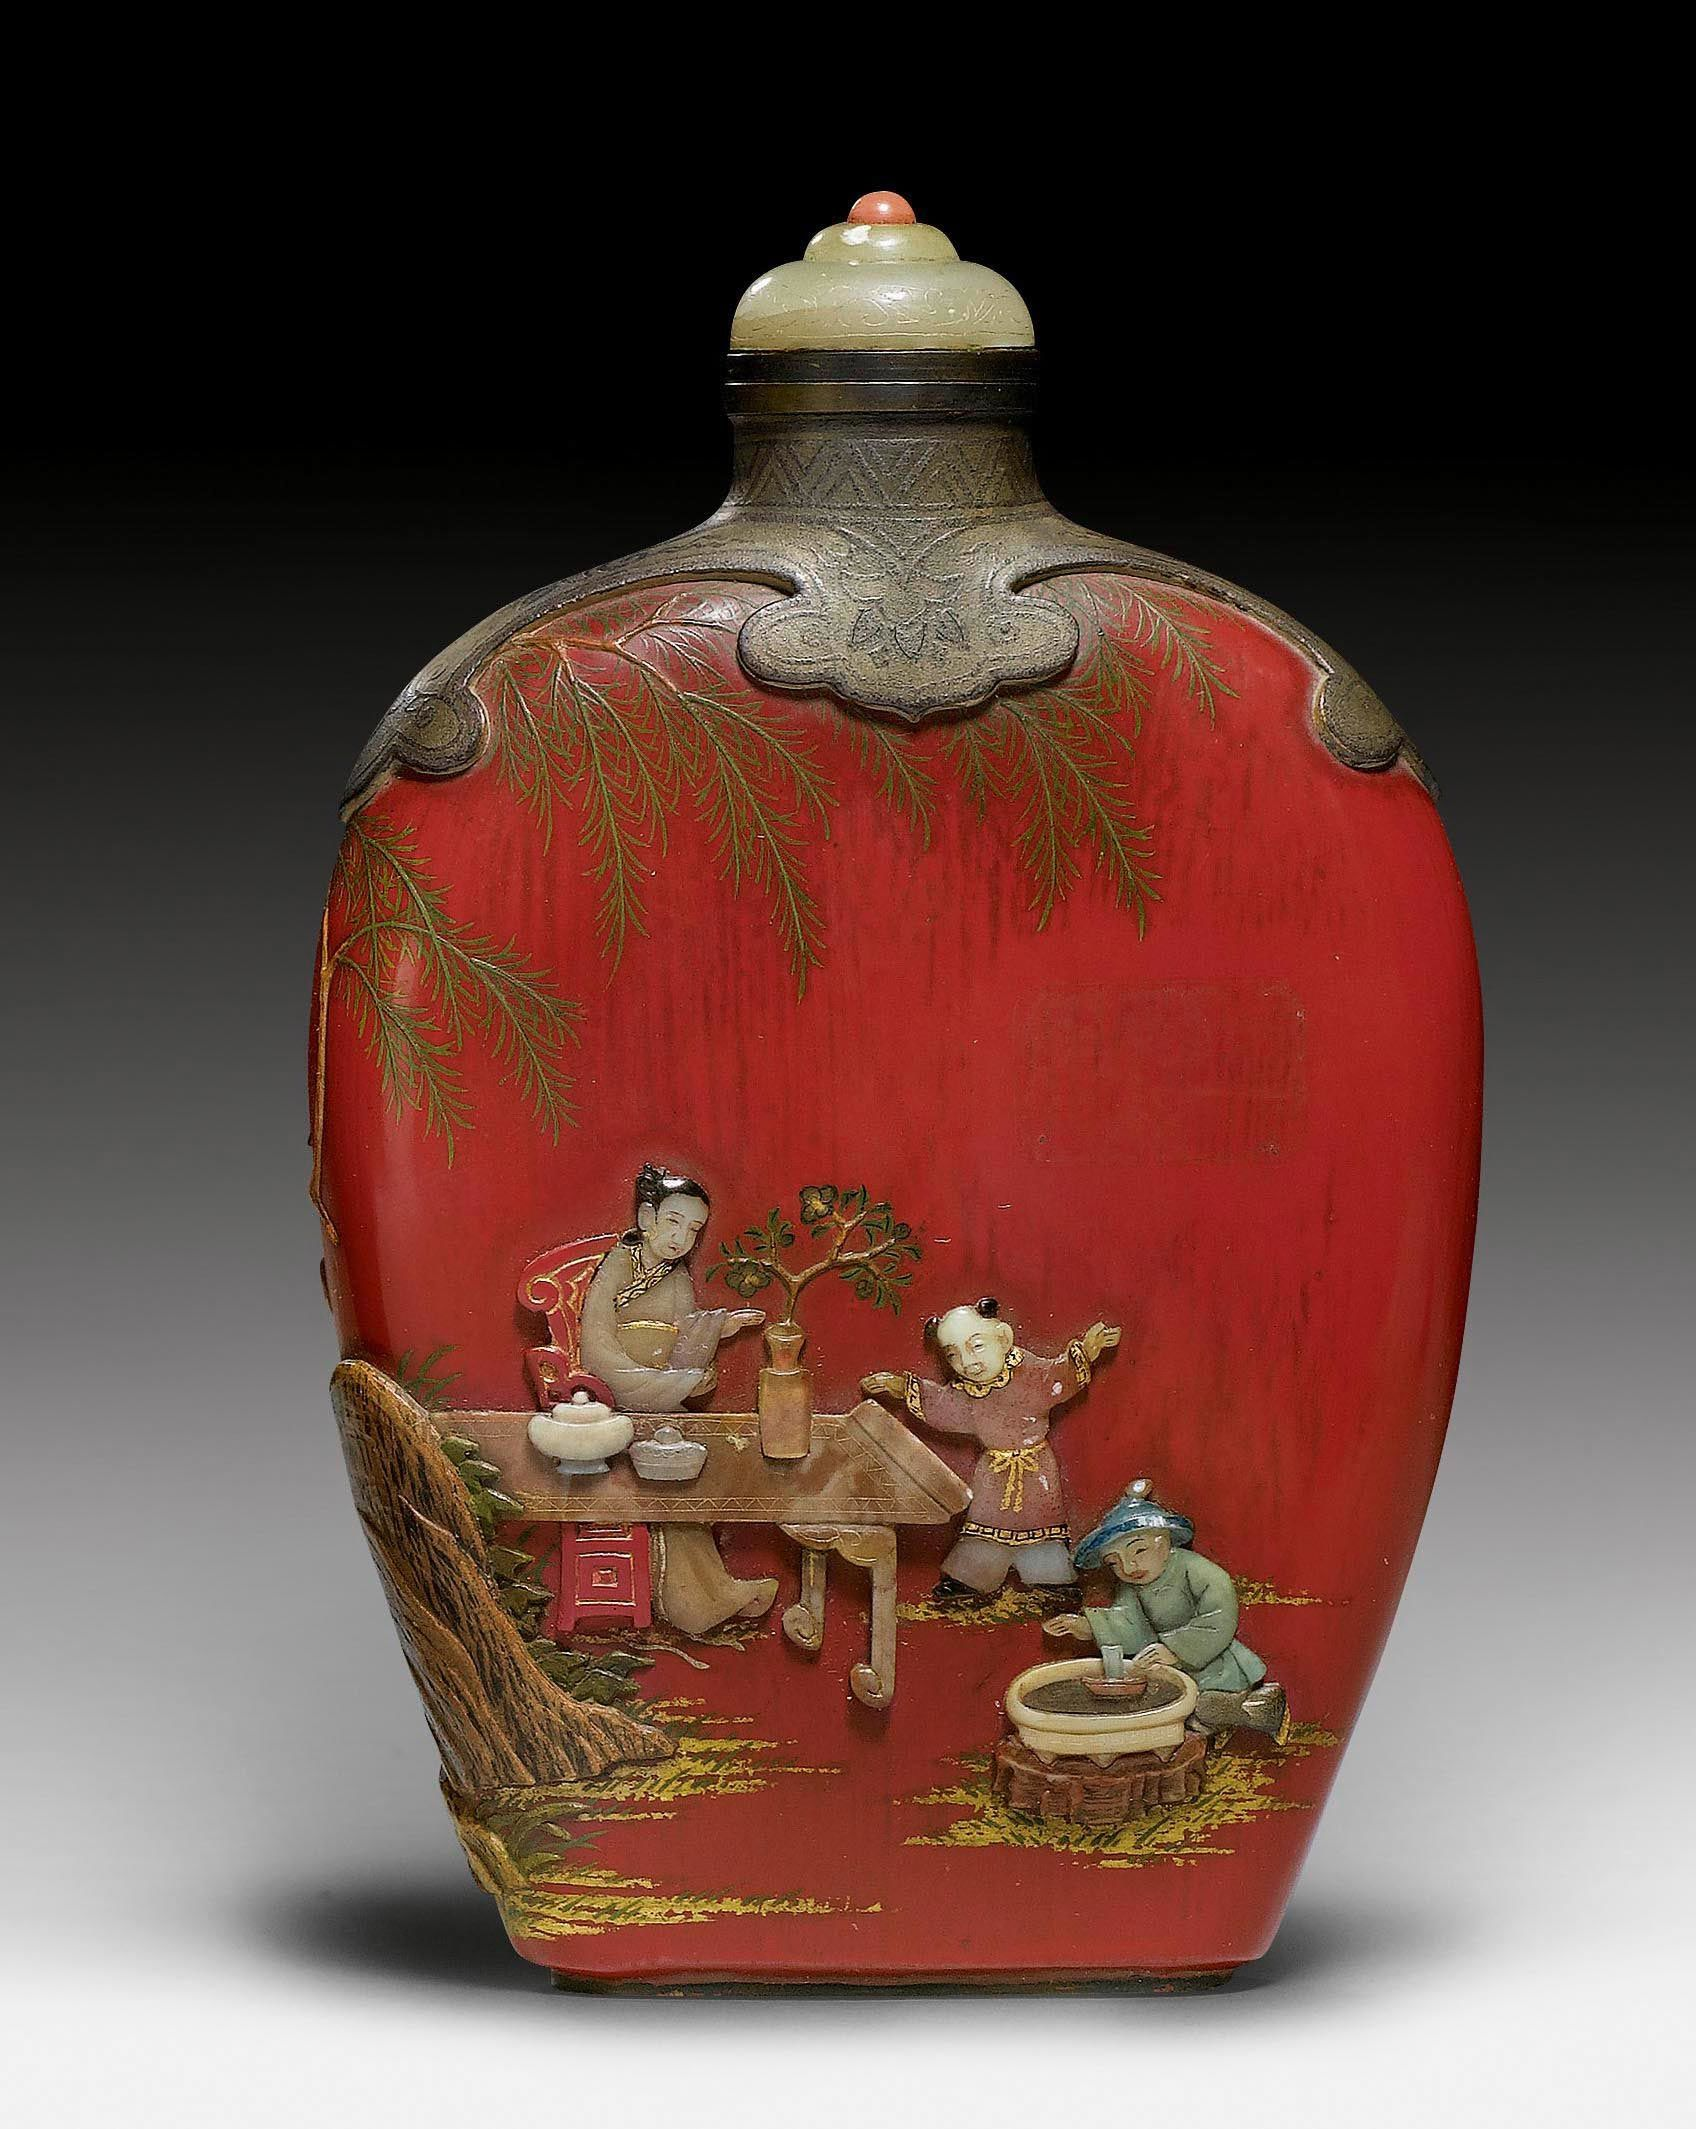 A FINE RED PAINTED WOOD SNUFF BOTTLE WITH STONE INLAYS. China, height 8.7 cm. Qianlong mark at the base. Matching stopper. China, H 8,7 cm. Flattened ovoid timber vials, painted red, with stone and wooden coverings. In a garden boy pleasure under the care of two women with the planting of Penjing Basin and insertion of flower bouquets. To this end, tables and chairs, where refreshments will also place outdoors under a tree. Fine details are painted and partly heightened with gold. The…